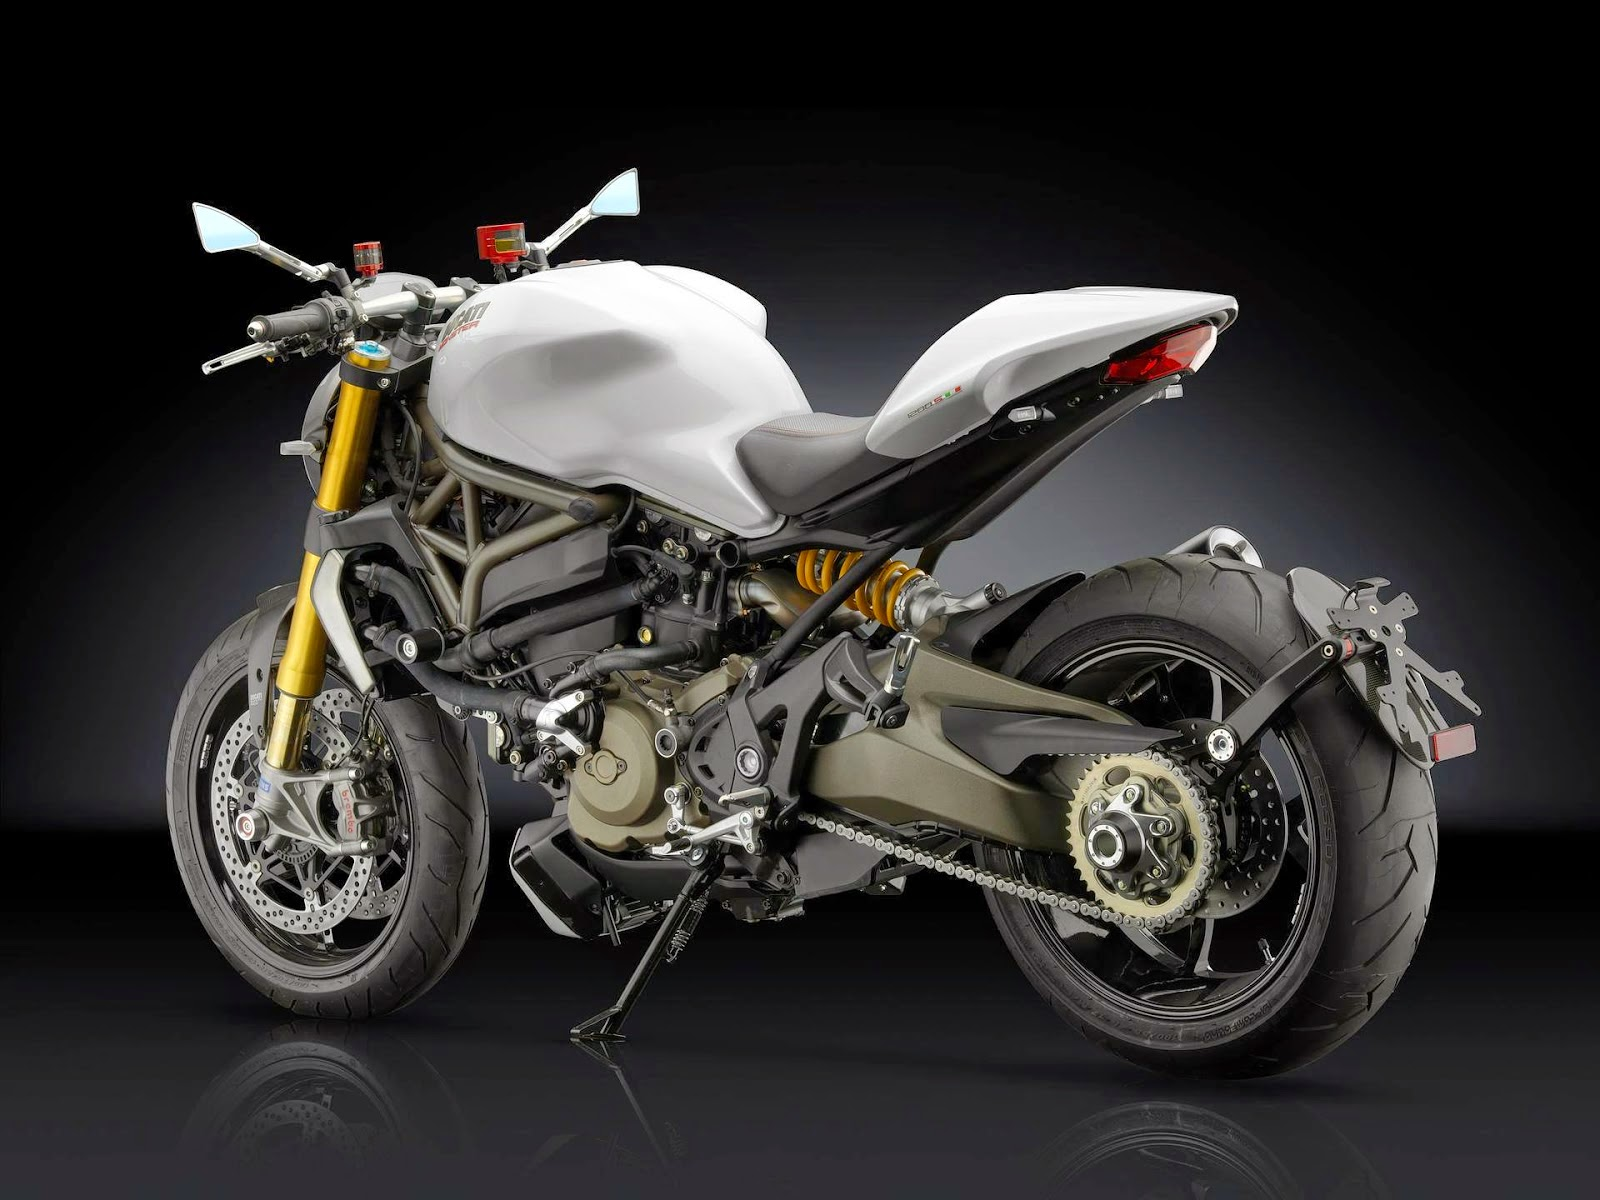 Hd Motorcycle Wallpaper Ducati Monster